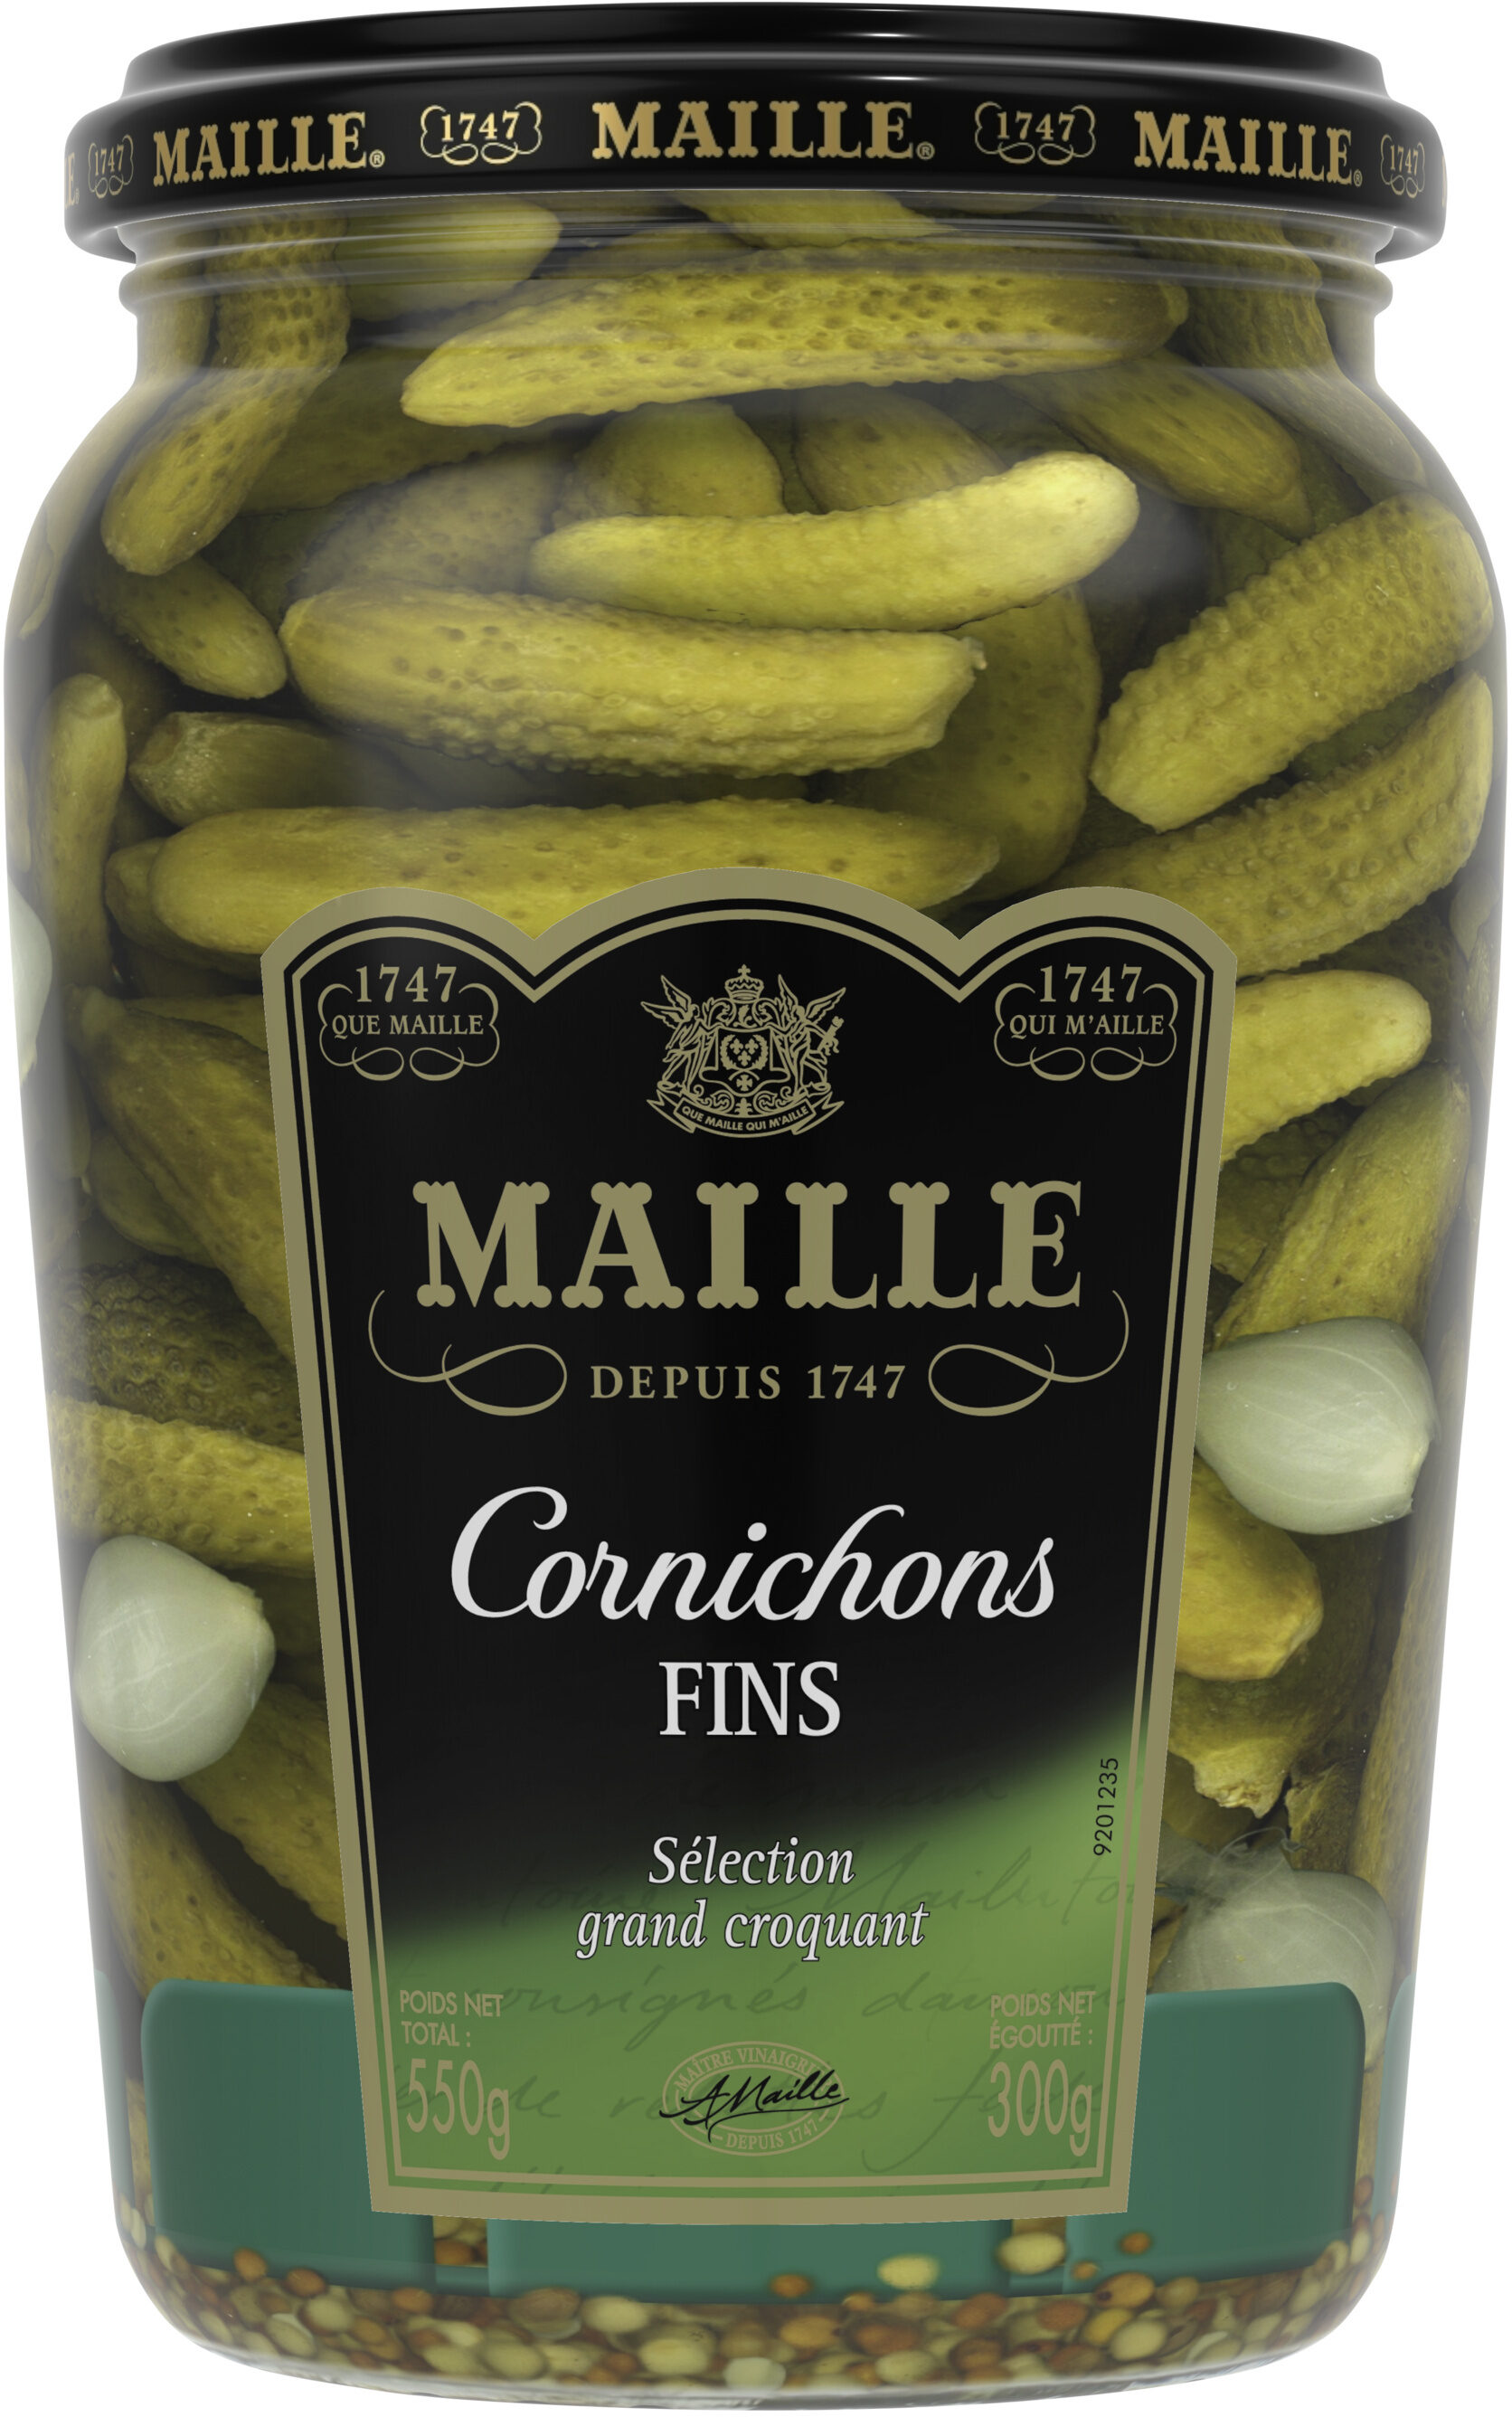 Maille Cornichons Fins Bocal - Product - fr